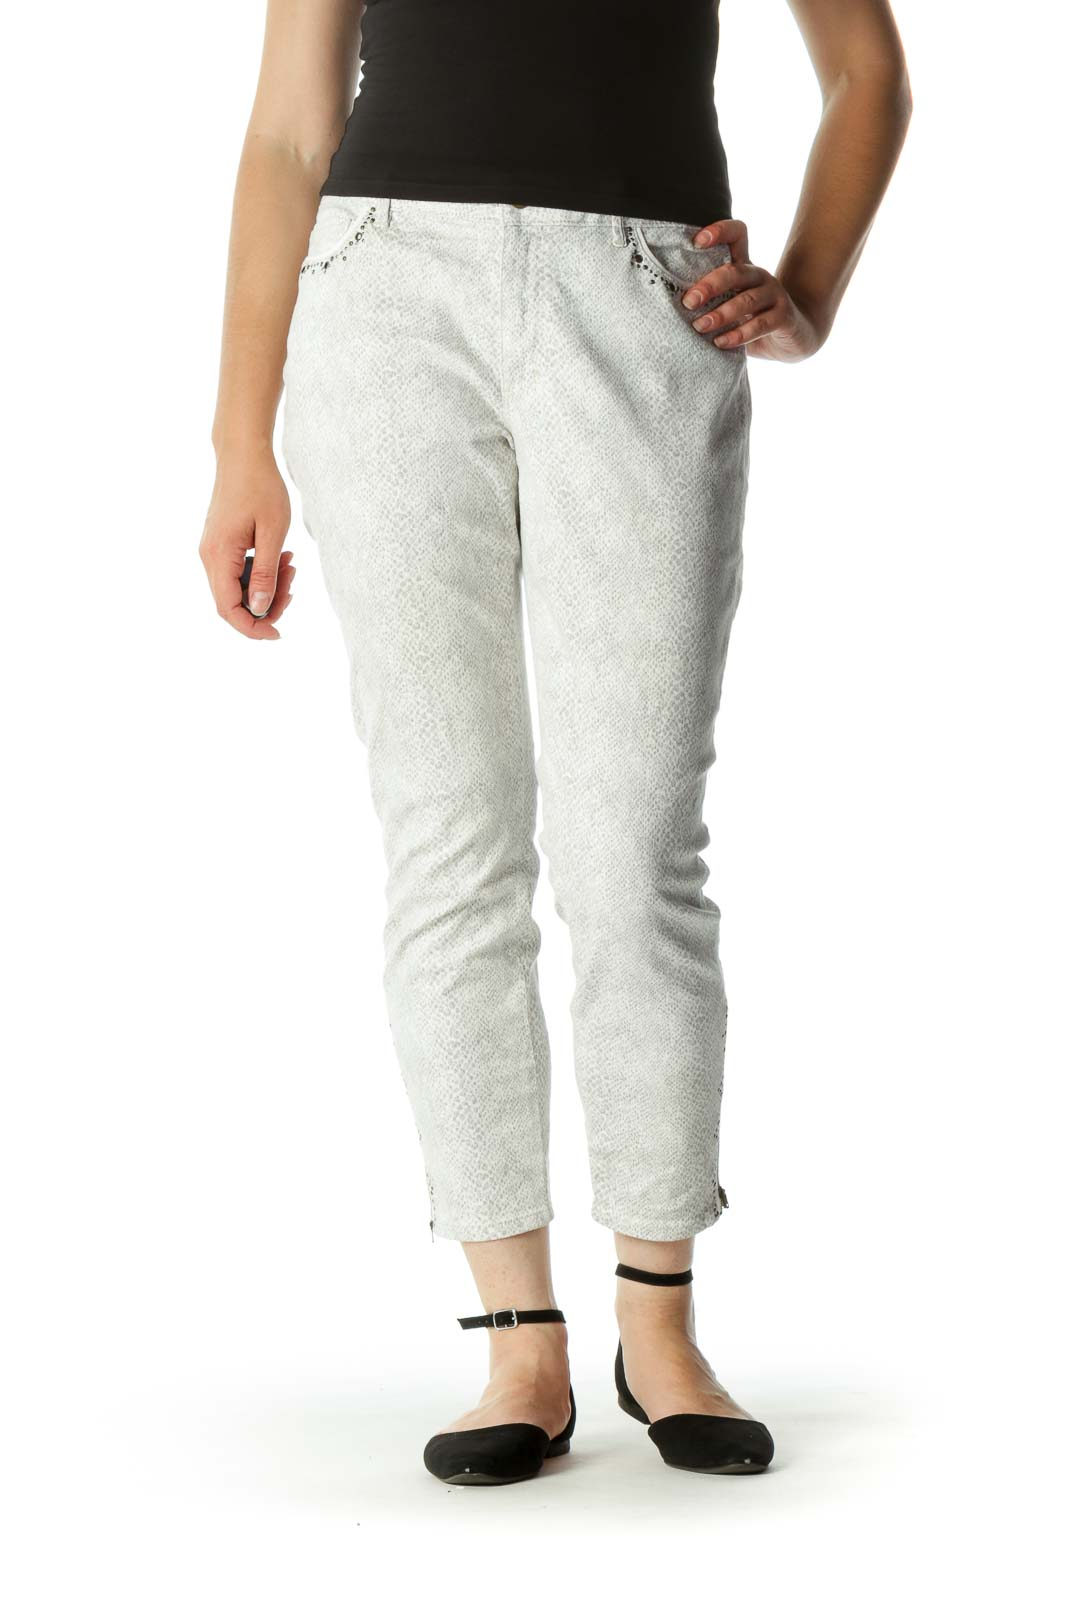 White Gray Studded Zipper Details Stretch Skinnt Pants